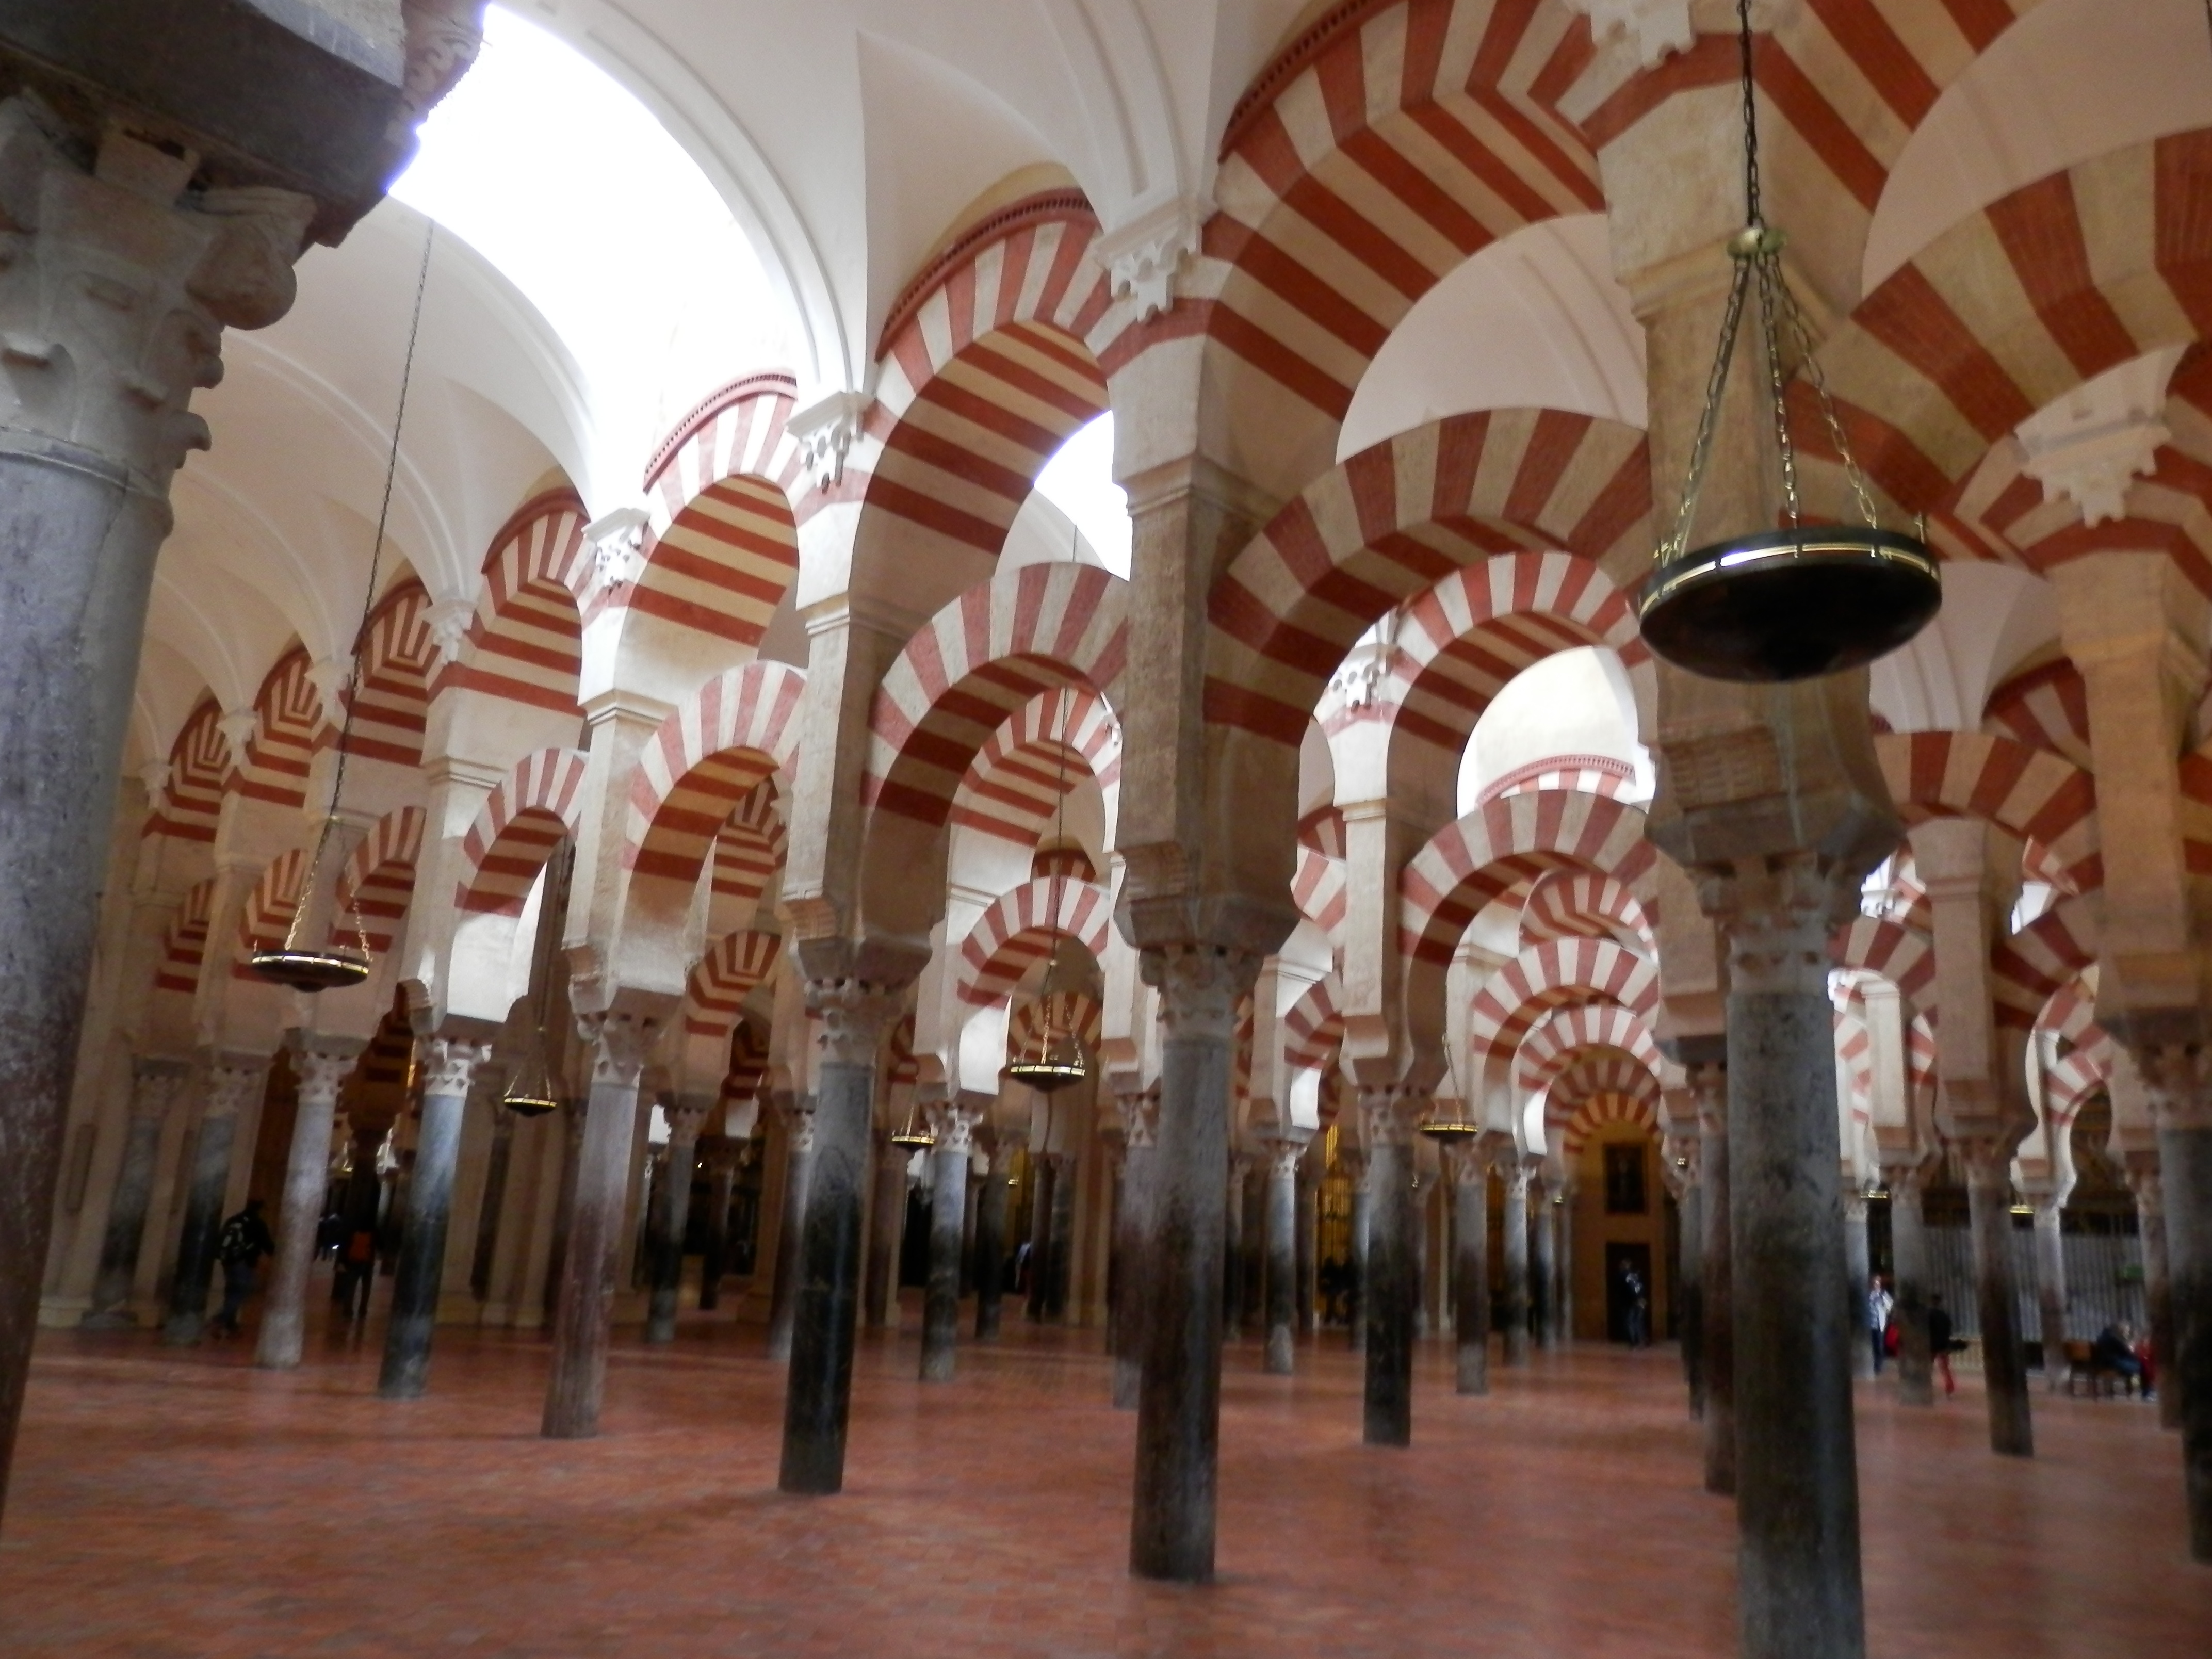 the great mosque of cordoba Great mosque of córdoba interior, great mosque of córdoba, spain, begun 785 alfonso gutierrez escera/ostman agency córdoba was probably carthaginian in origin and was occupied by the romans in 152 bc.